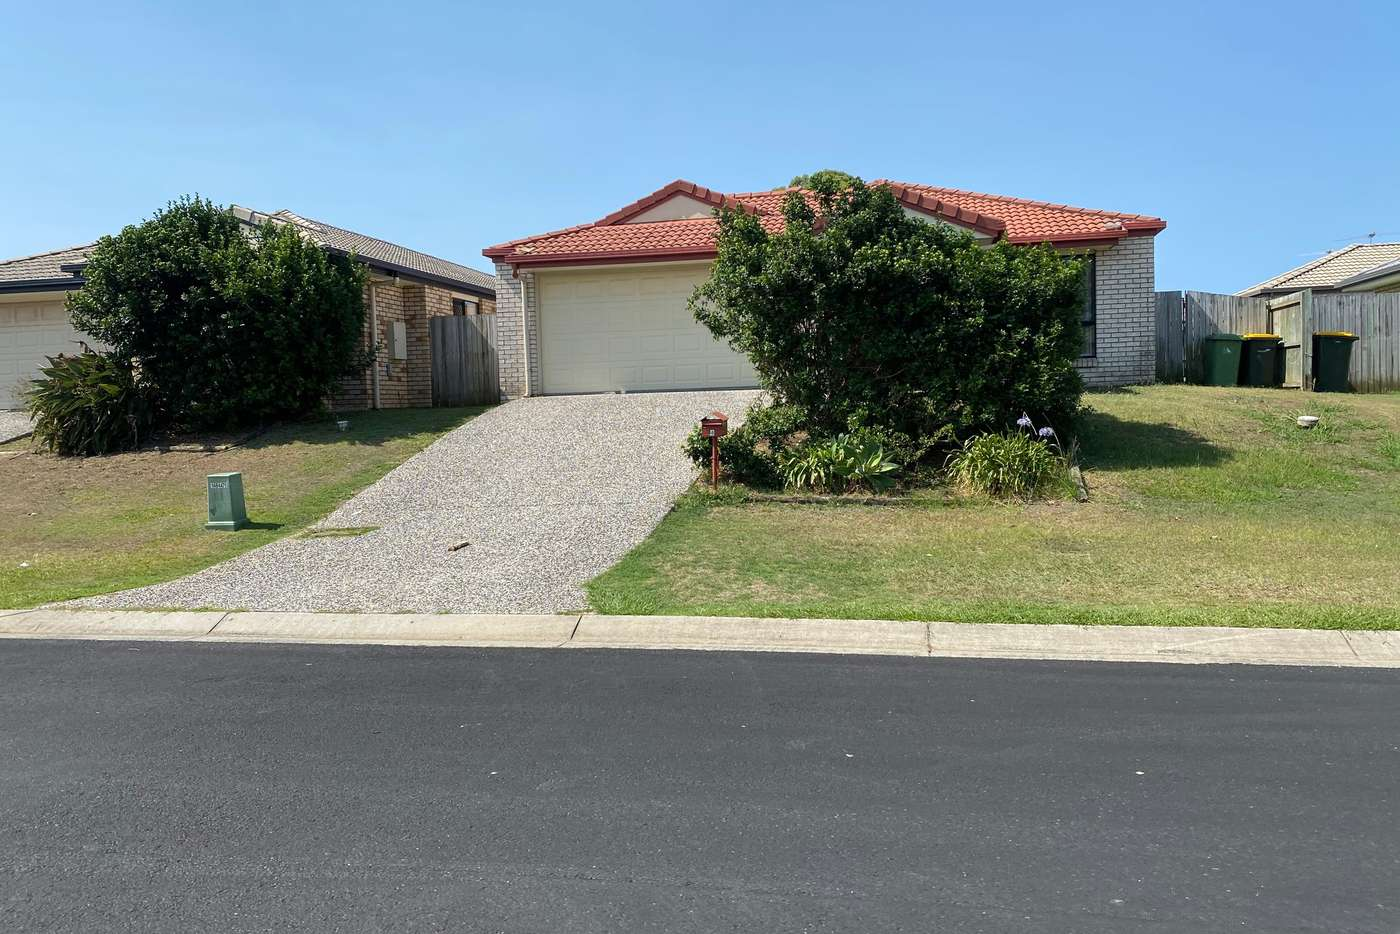 Main view of Homely house listing, 4 Tuohy Court, Rothwell QLD 4022